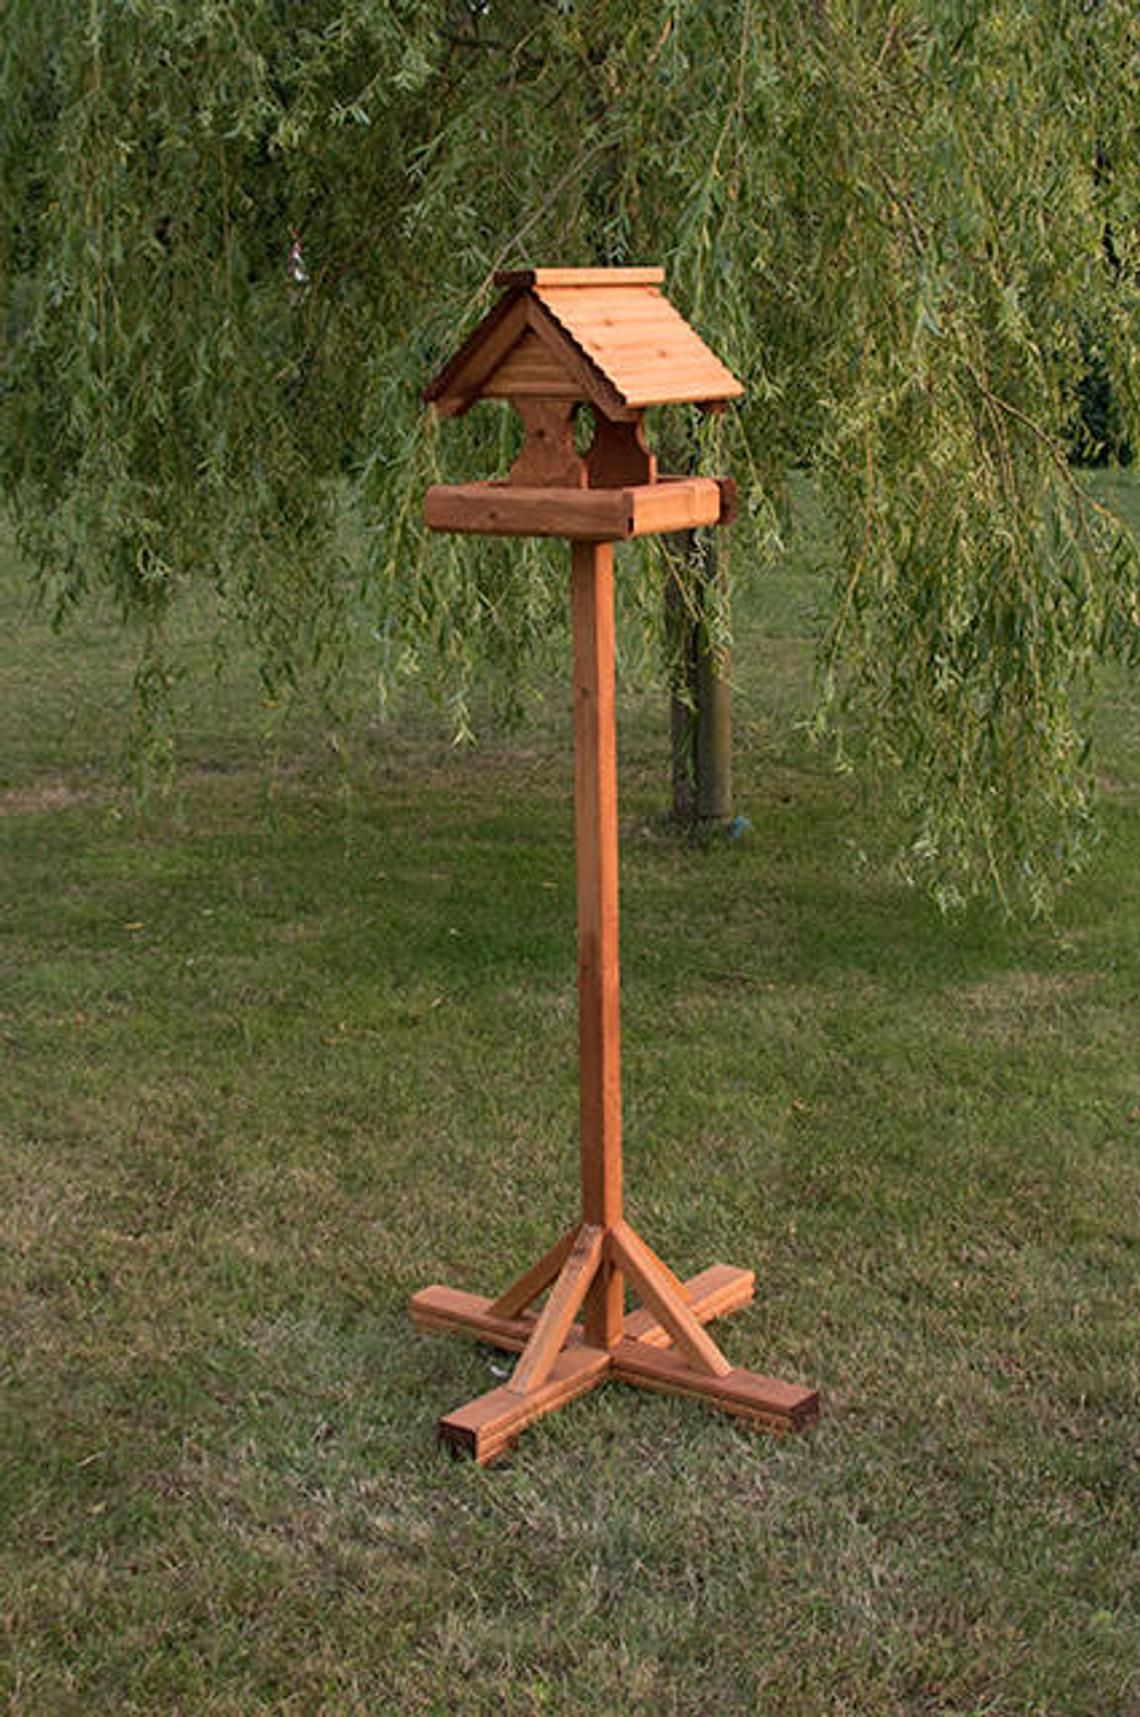 Rustic Wooden Roof Bird Table Bird Houses Rustic Wooden Tables